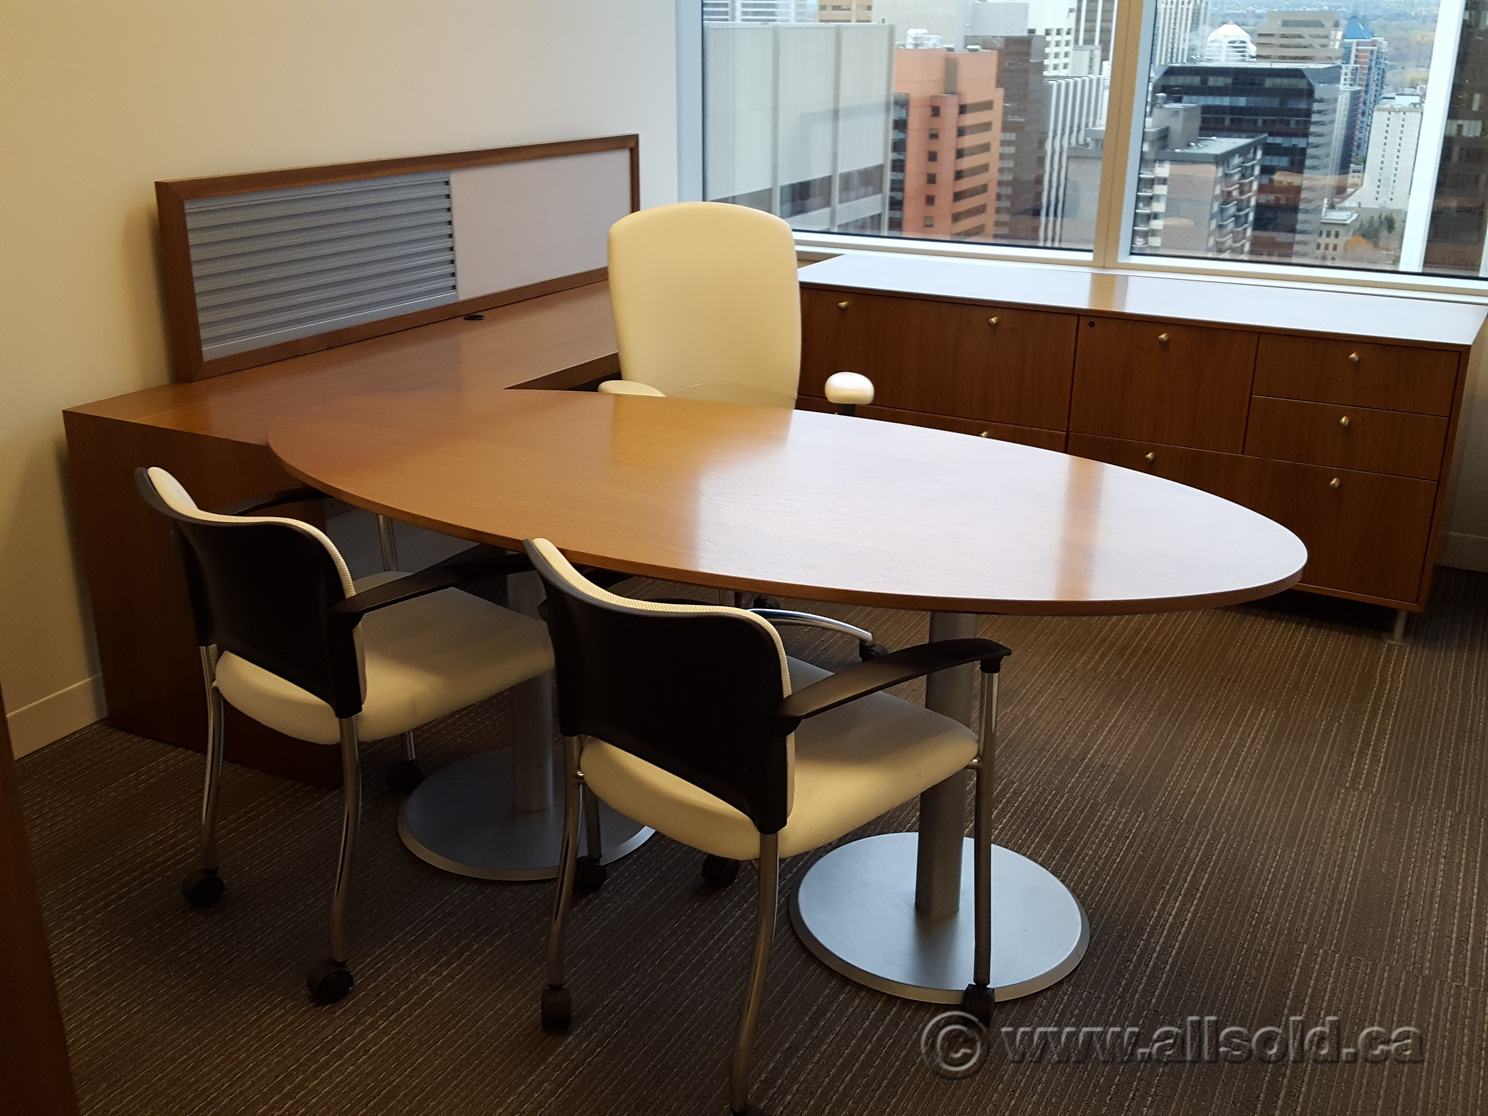 Teknion Solutions Solitaire Series Walnut Oval Table Desk Buy Sell Used Office